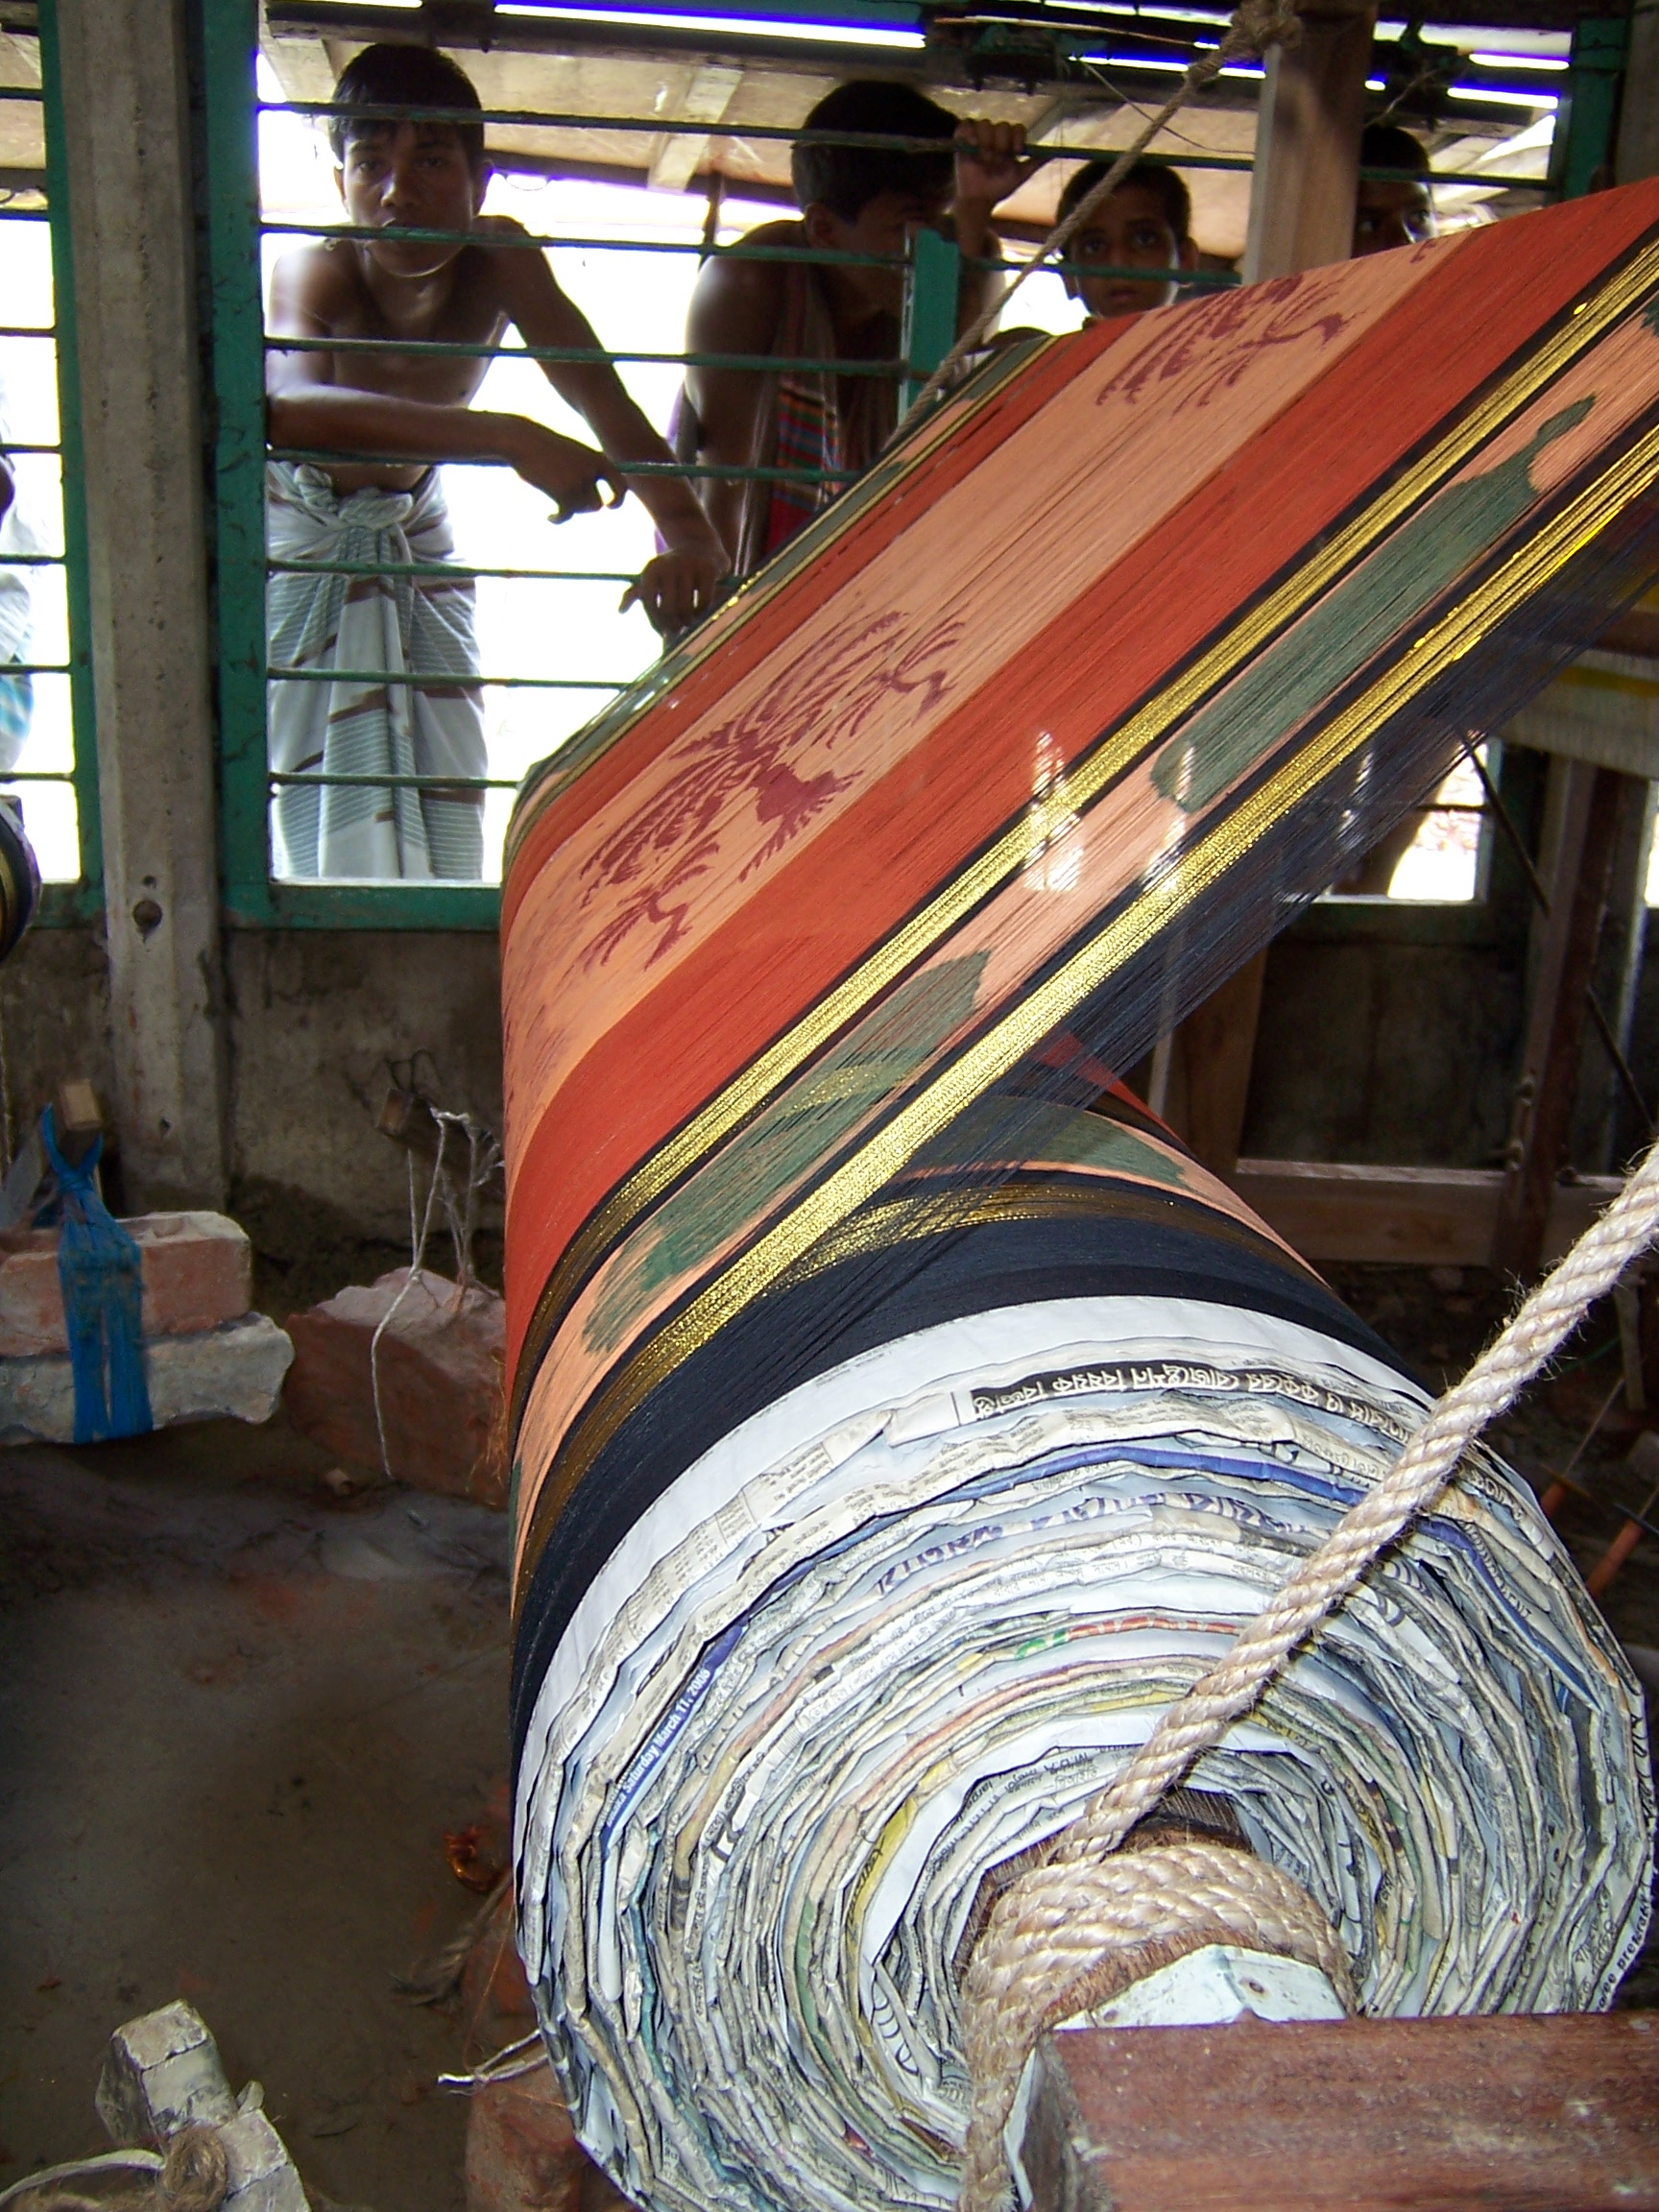 A large roll of silk